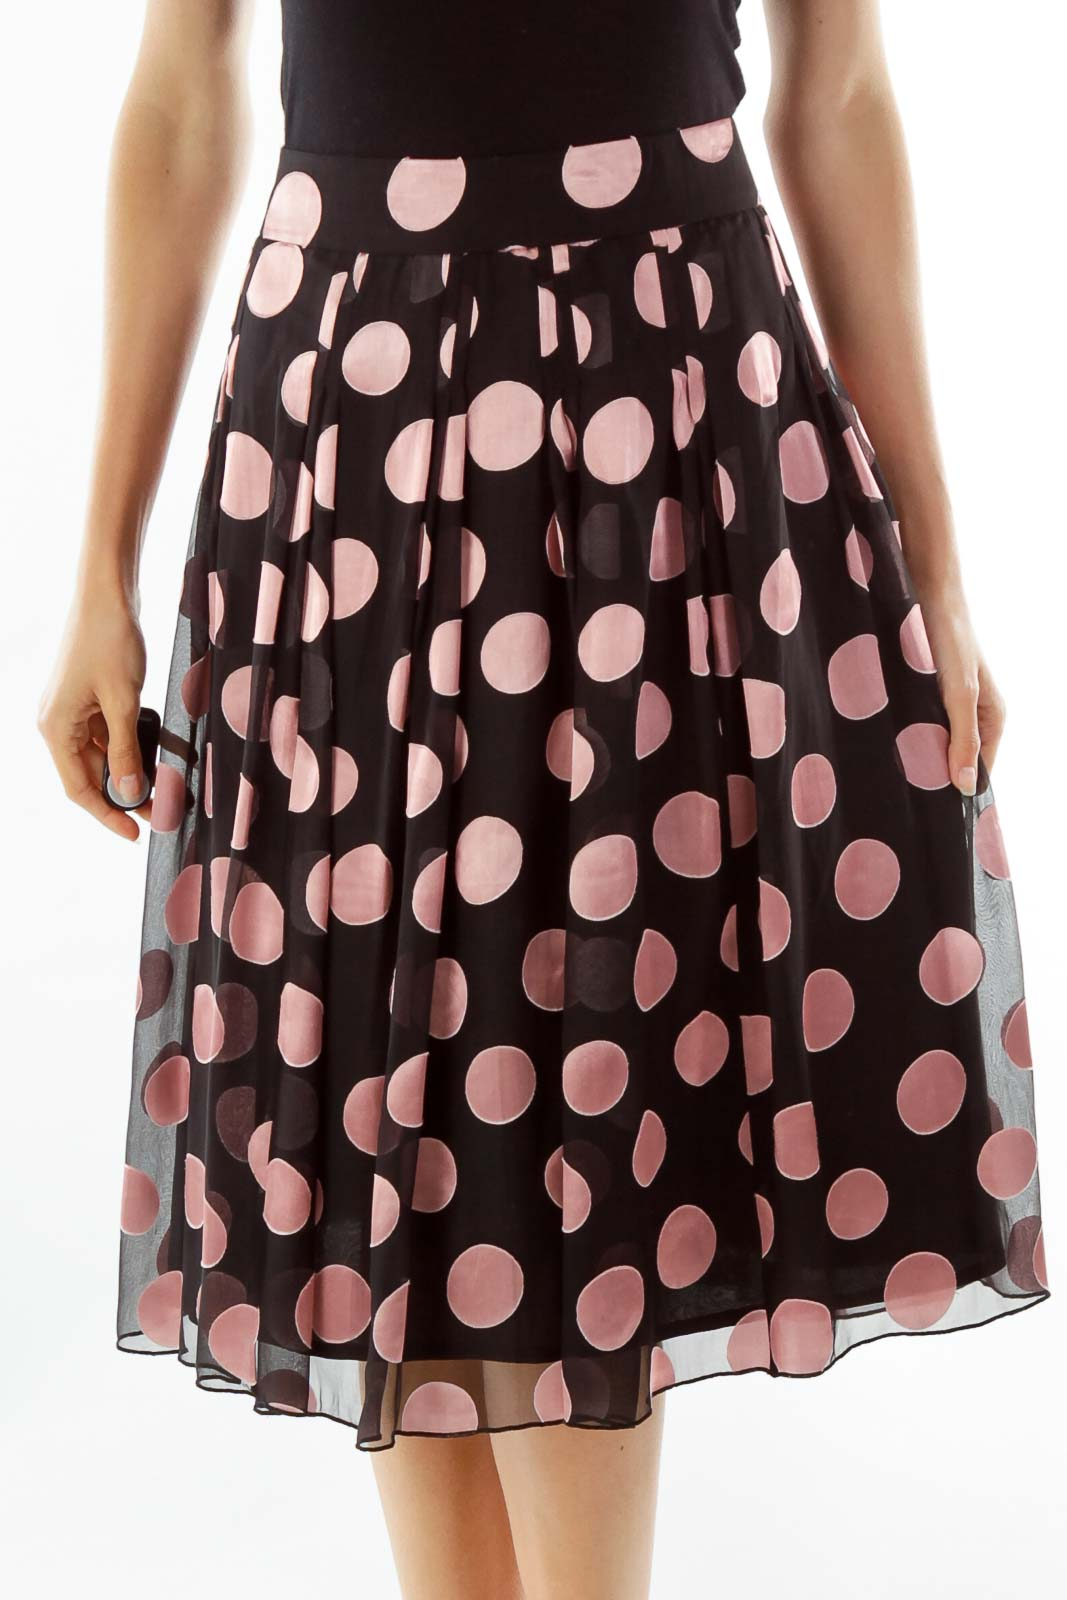 Black and Pink Polka Dot Midi Skirt